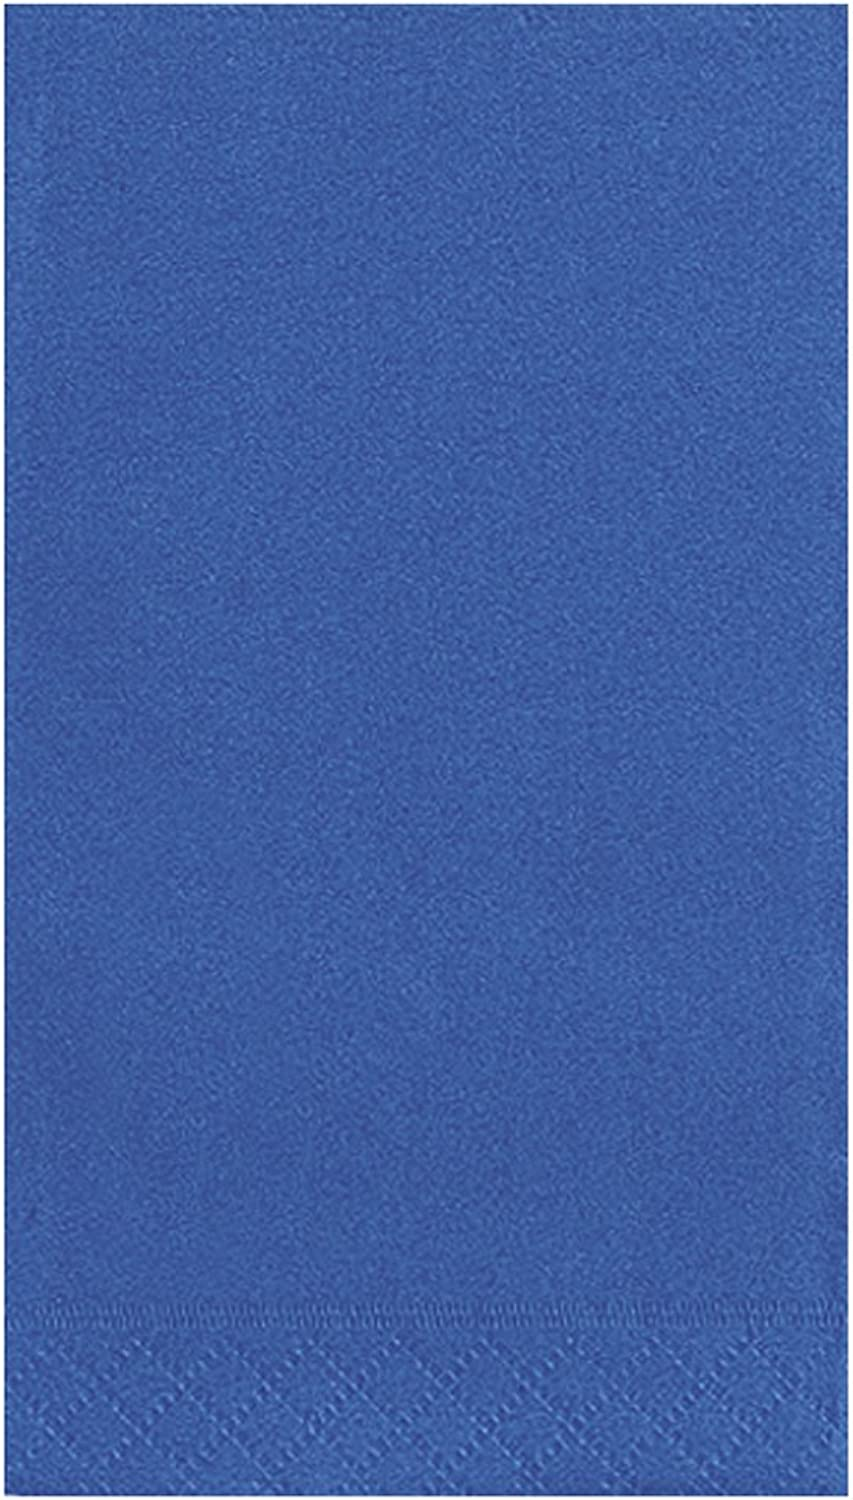 Royal bluee Guest Napkins, 20ct